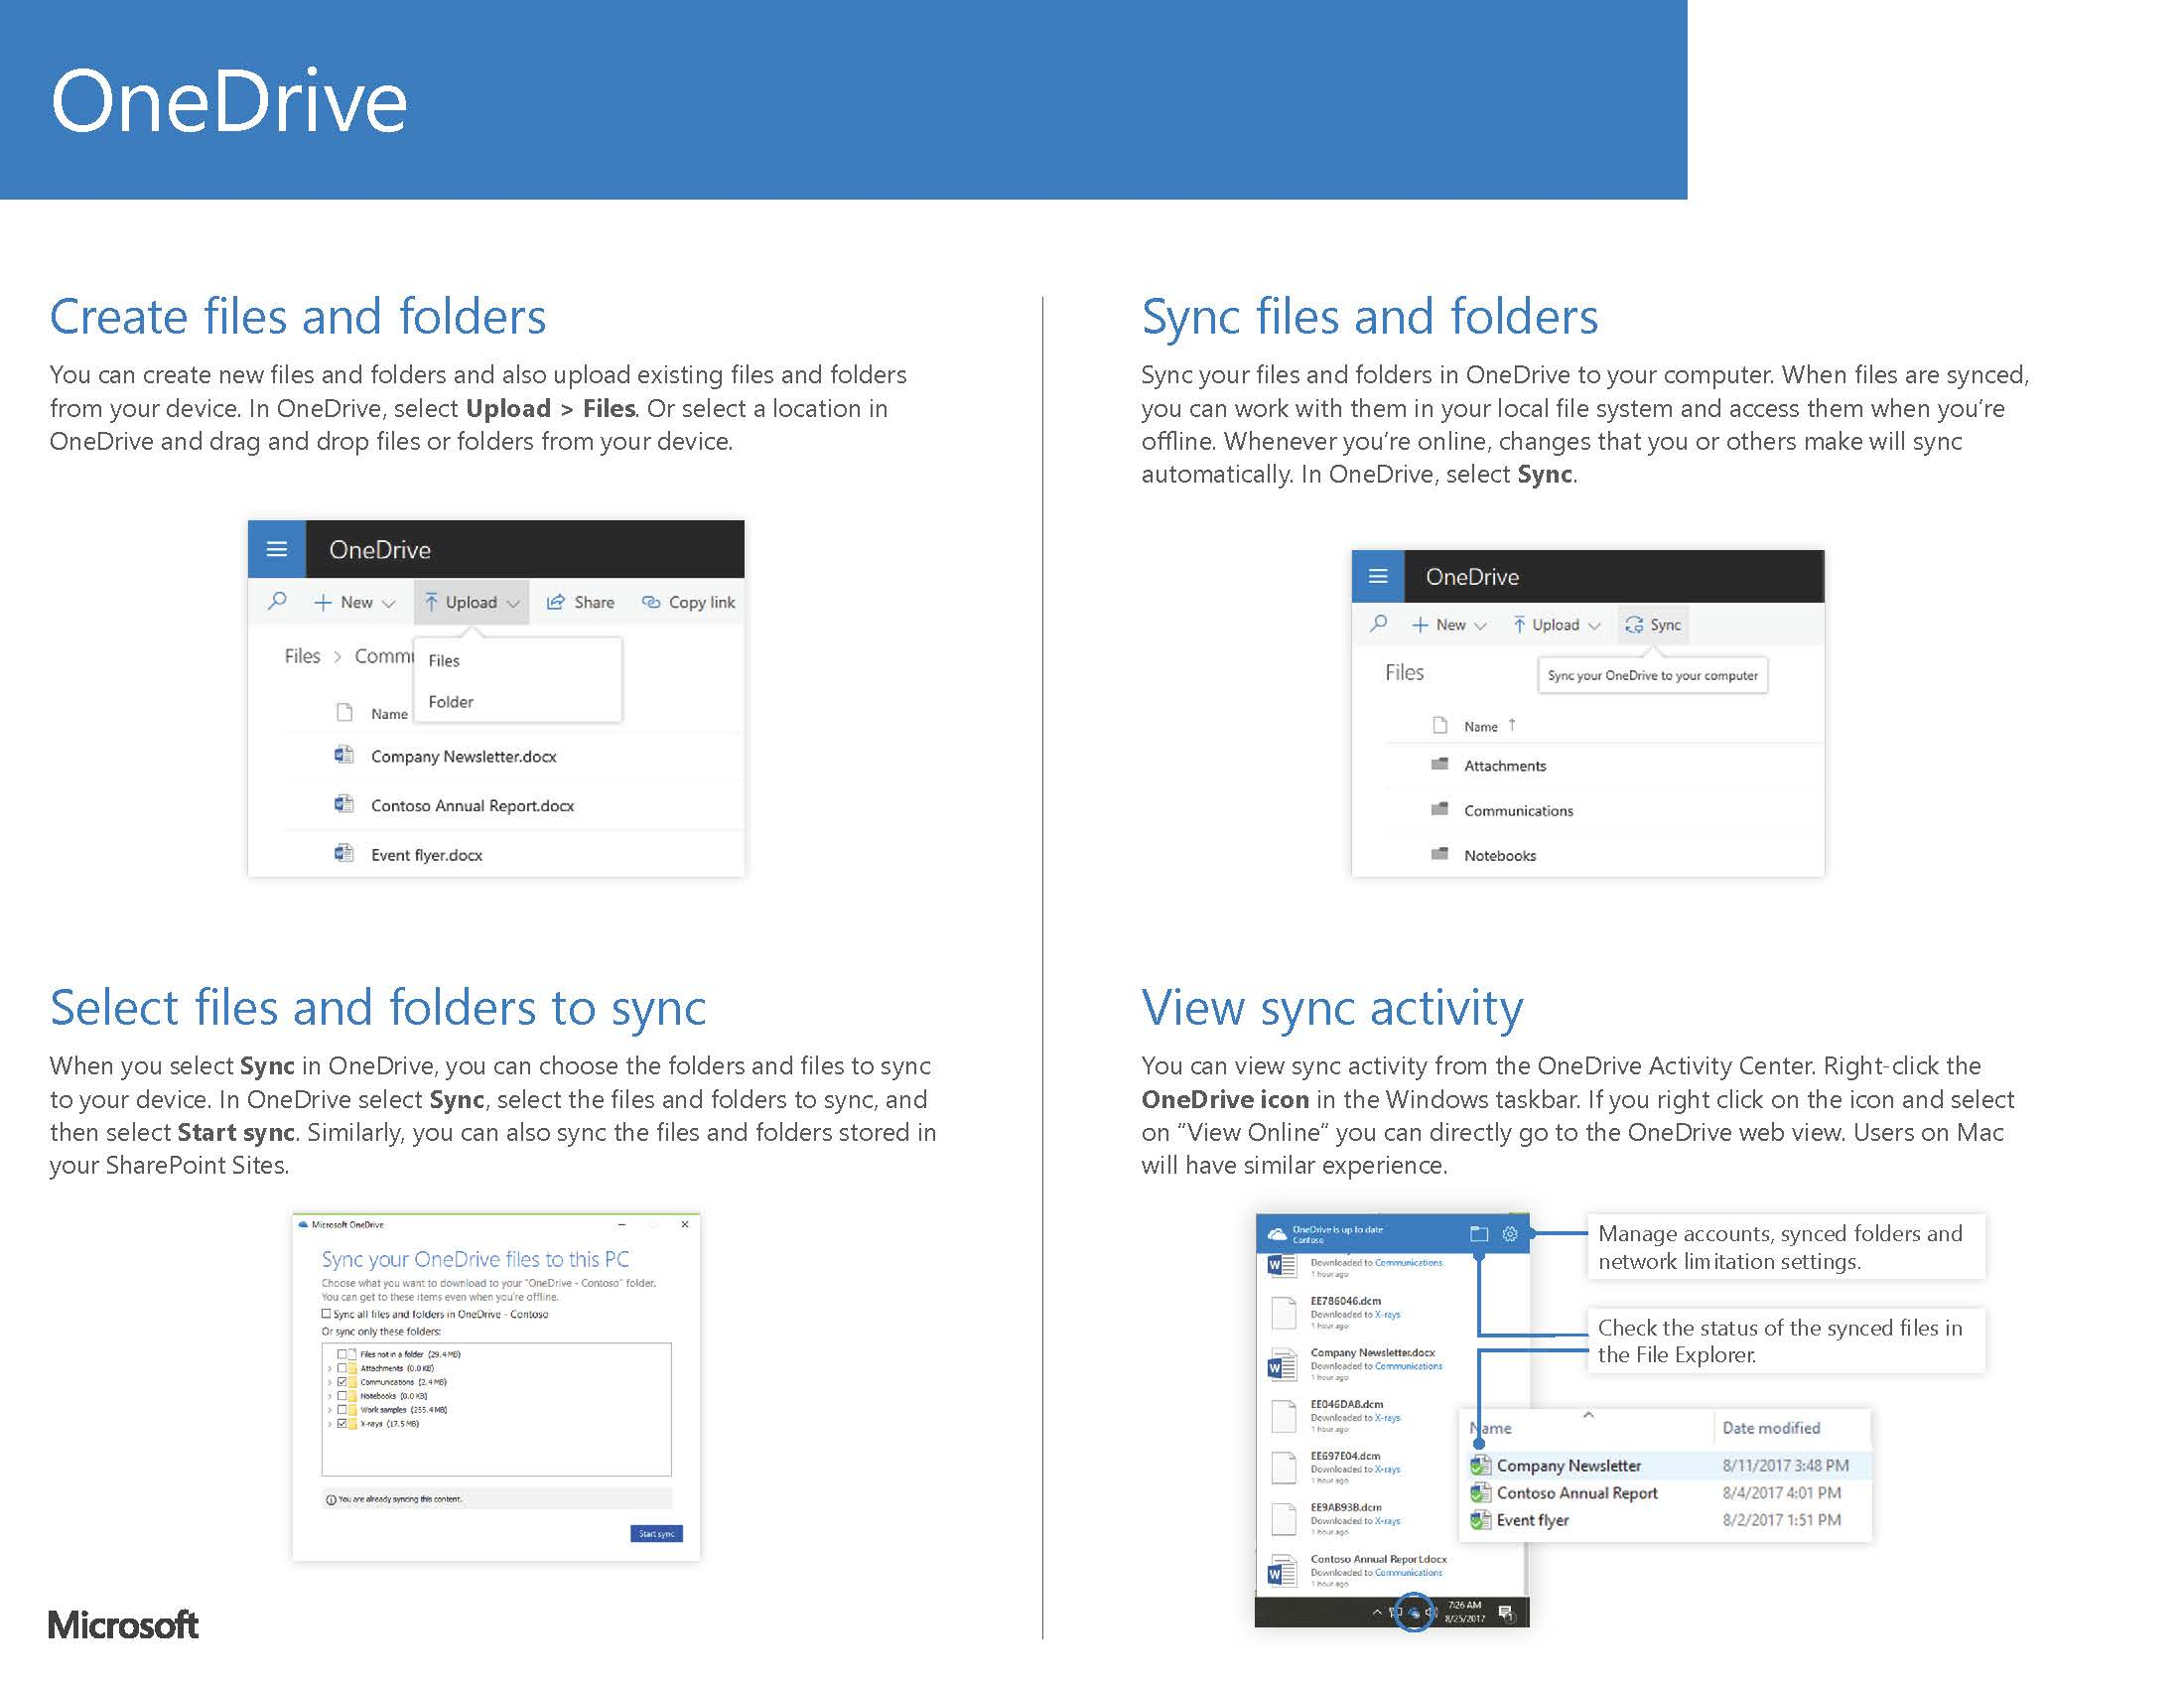 OneDrive_Page_3.jpg